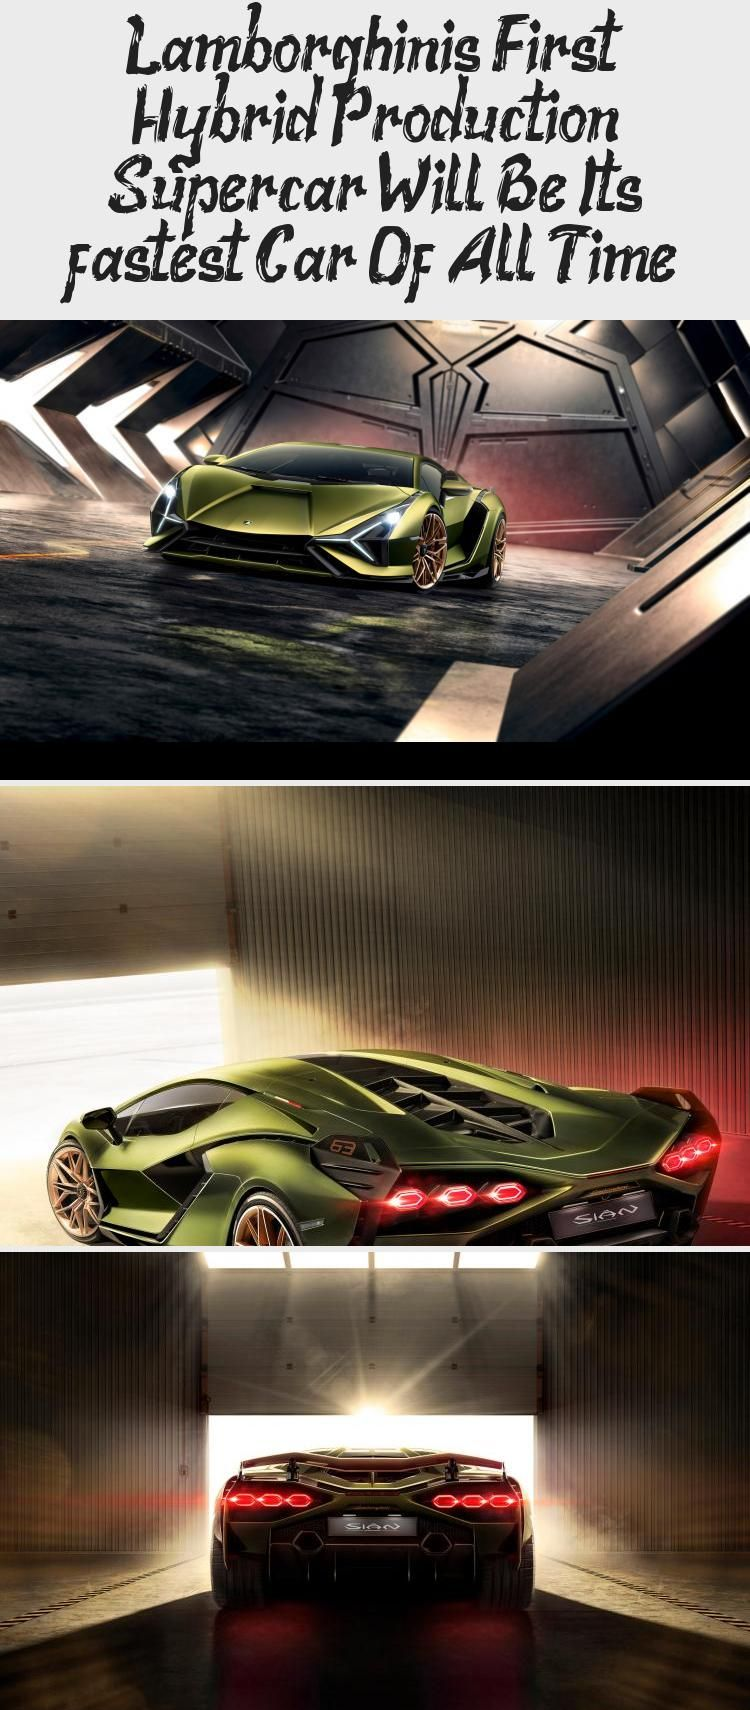 Lamborghini S First Hybrid Production Supercar Will Be Its In 2020 Super Cars Fast Cars Lamborghini